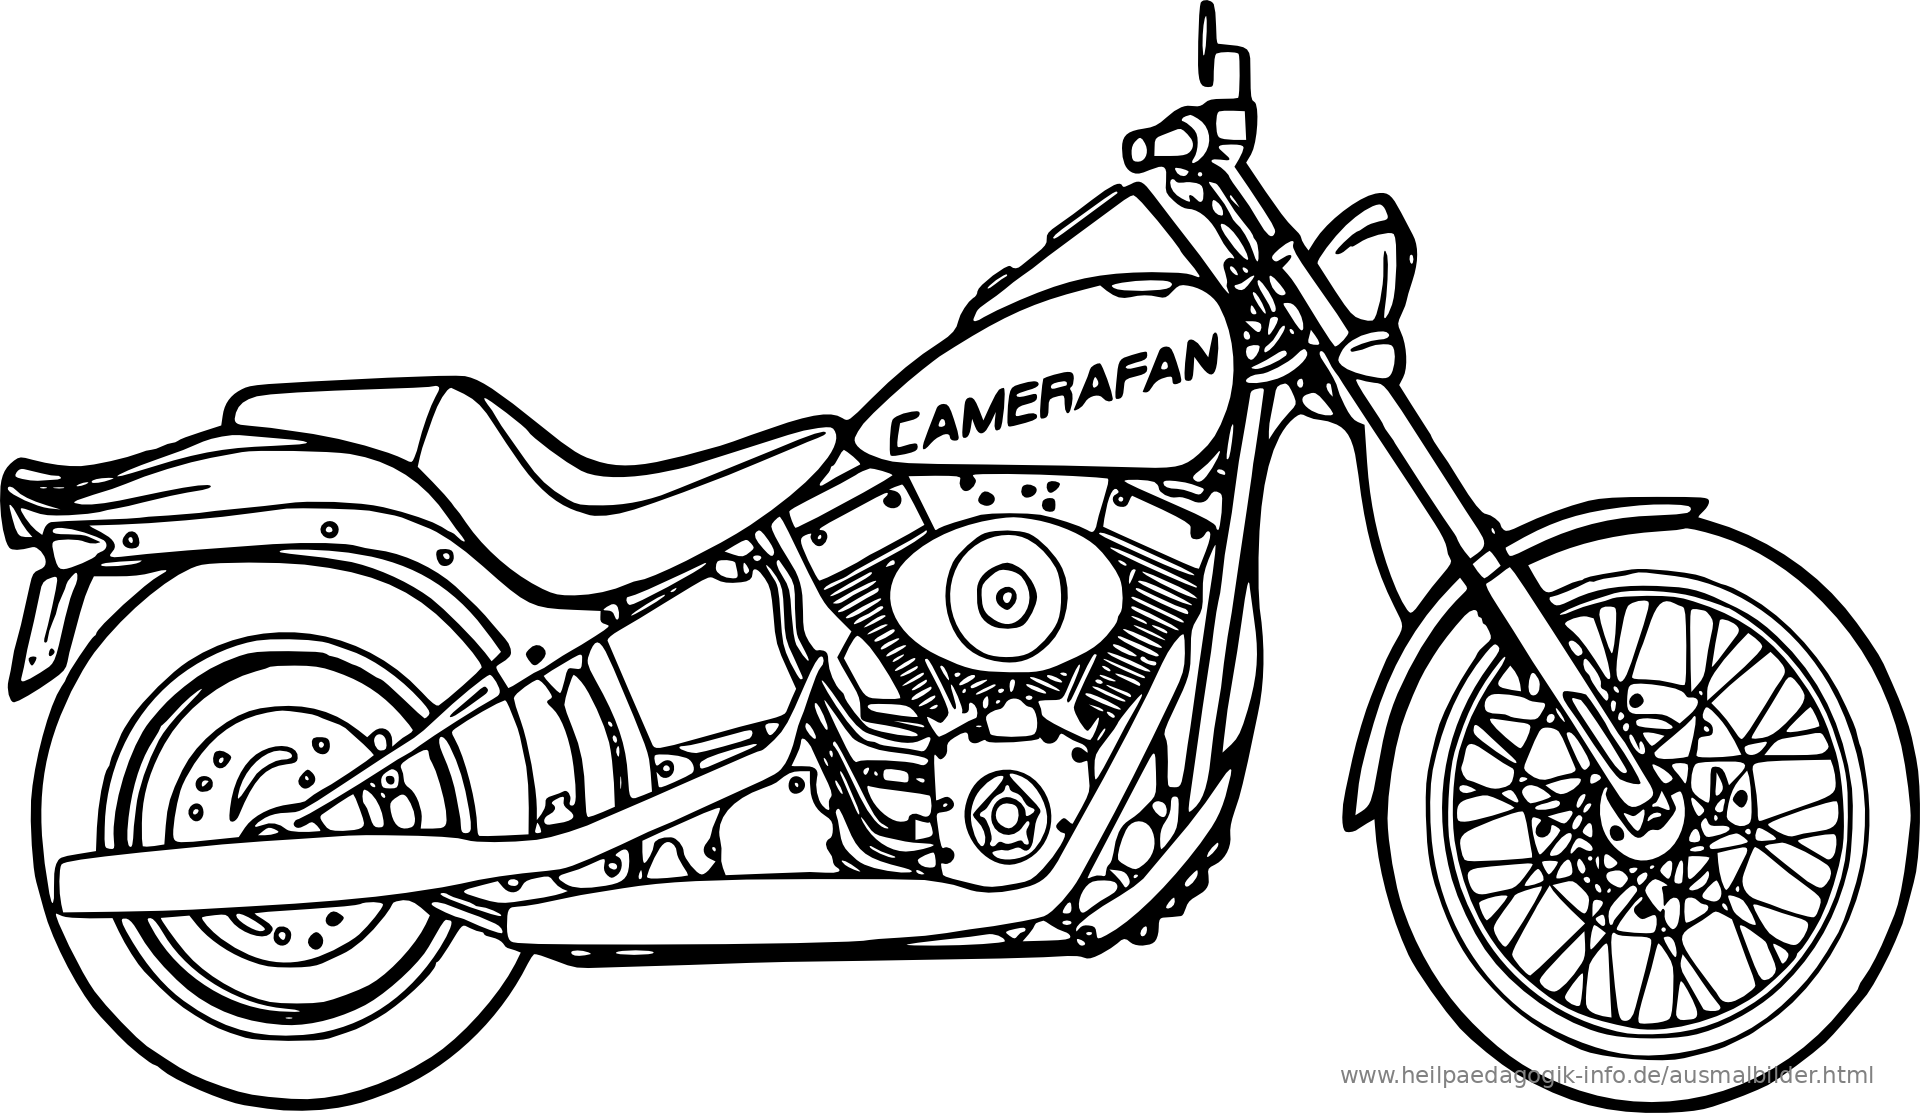 odicis in addition Motorcycle Coloring as well 2014 Mustang Headlight Wiring Diagram moreover Super Charger For A 2014 Street Glide as well Triumph Trident. on honda street rod